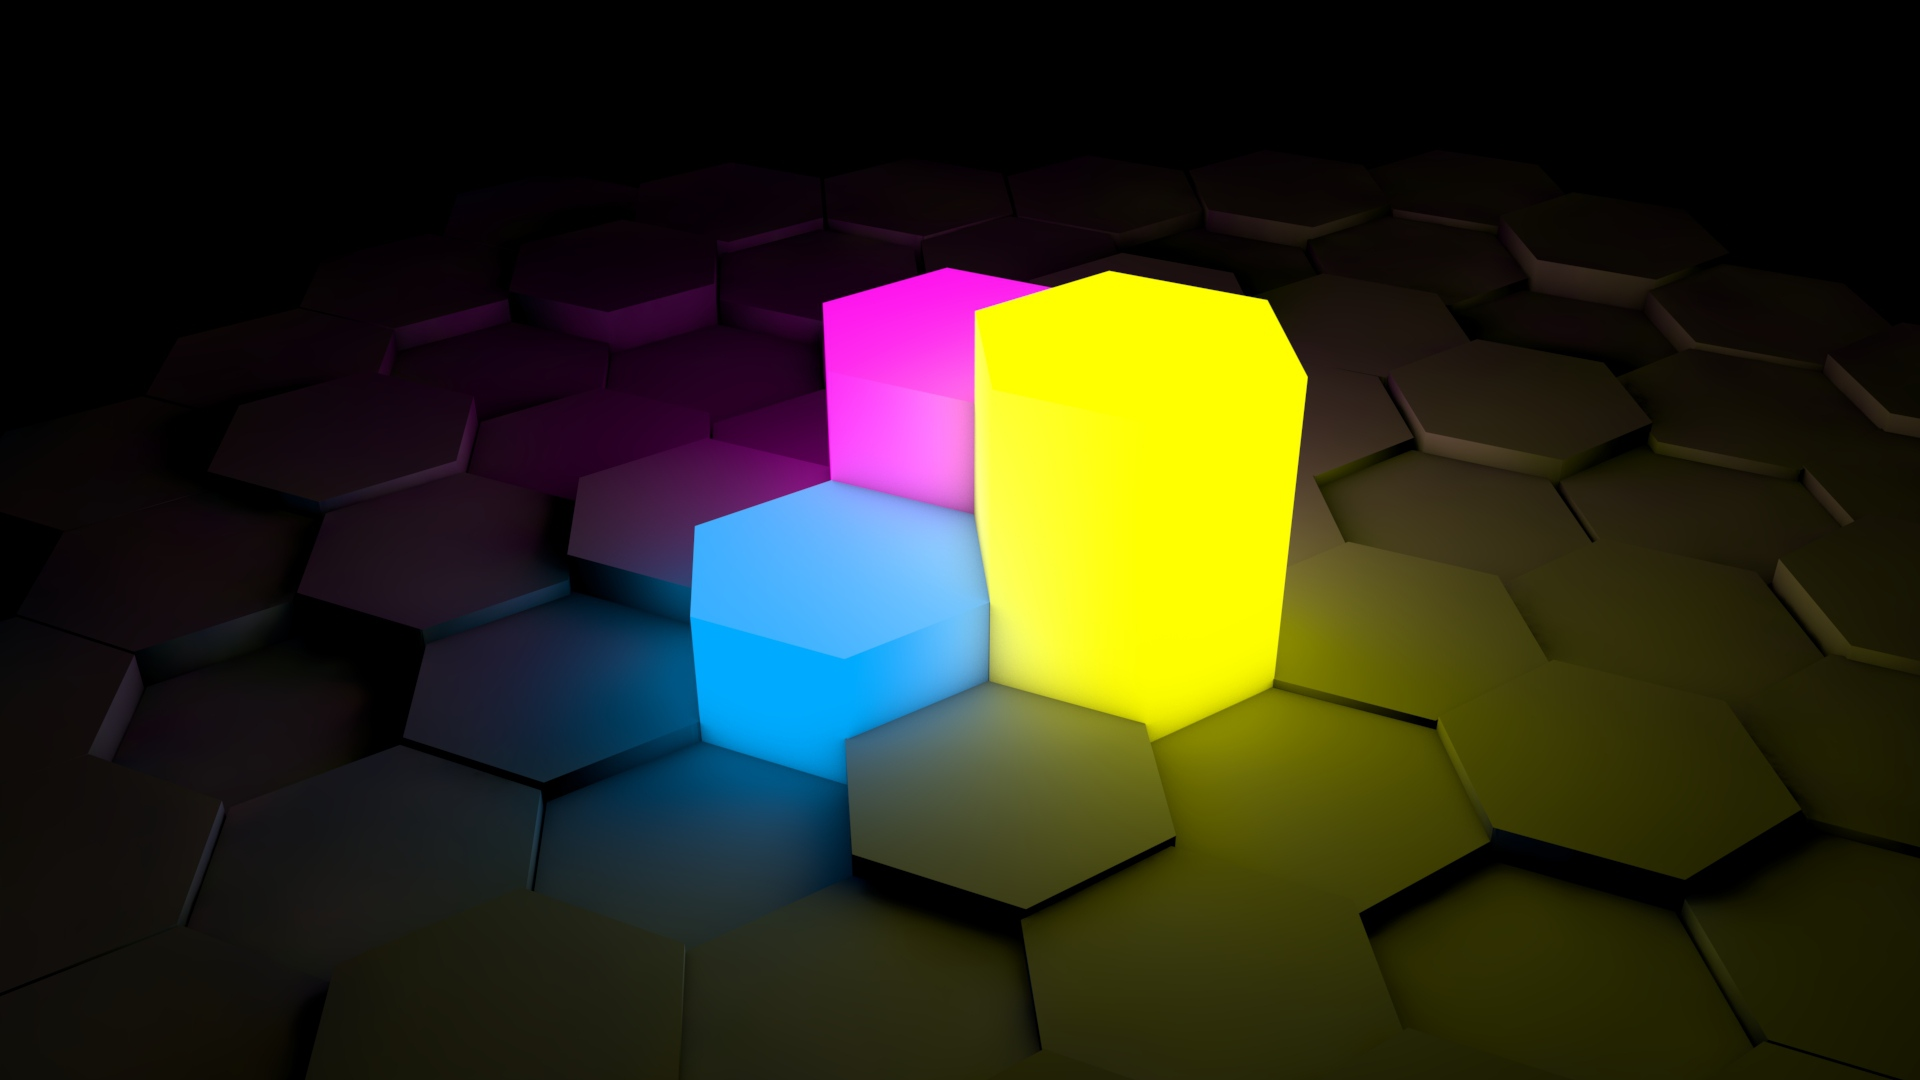 3d Cube Desktop Wallpaper Abstract Neon Wallpapers Hd Pixelstalk Net